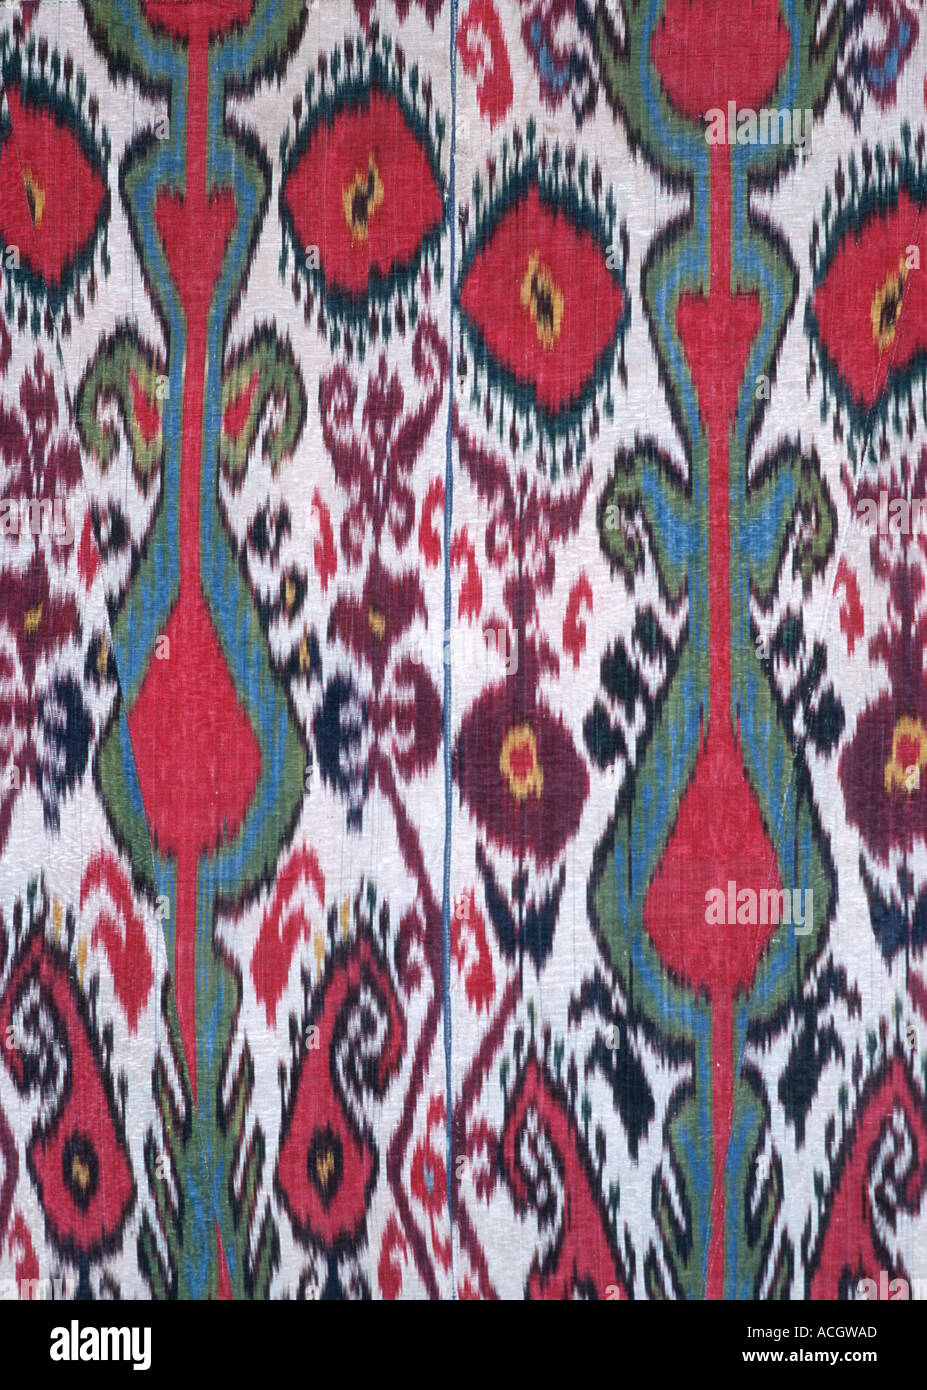 Ikat patterned silk fabric from Uzbekistan A textile tradition practised by both the Tadjik and Uzbek peoples Central Asia - Stock Image